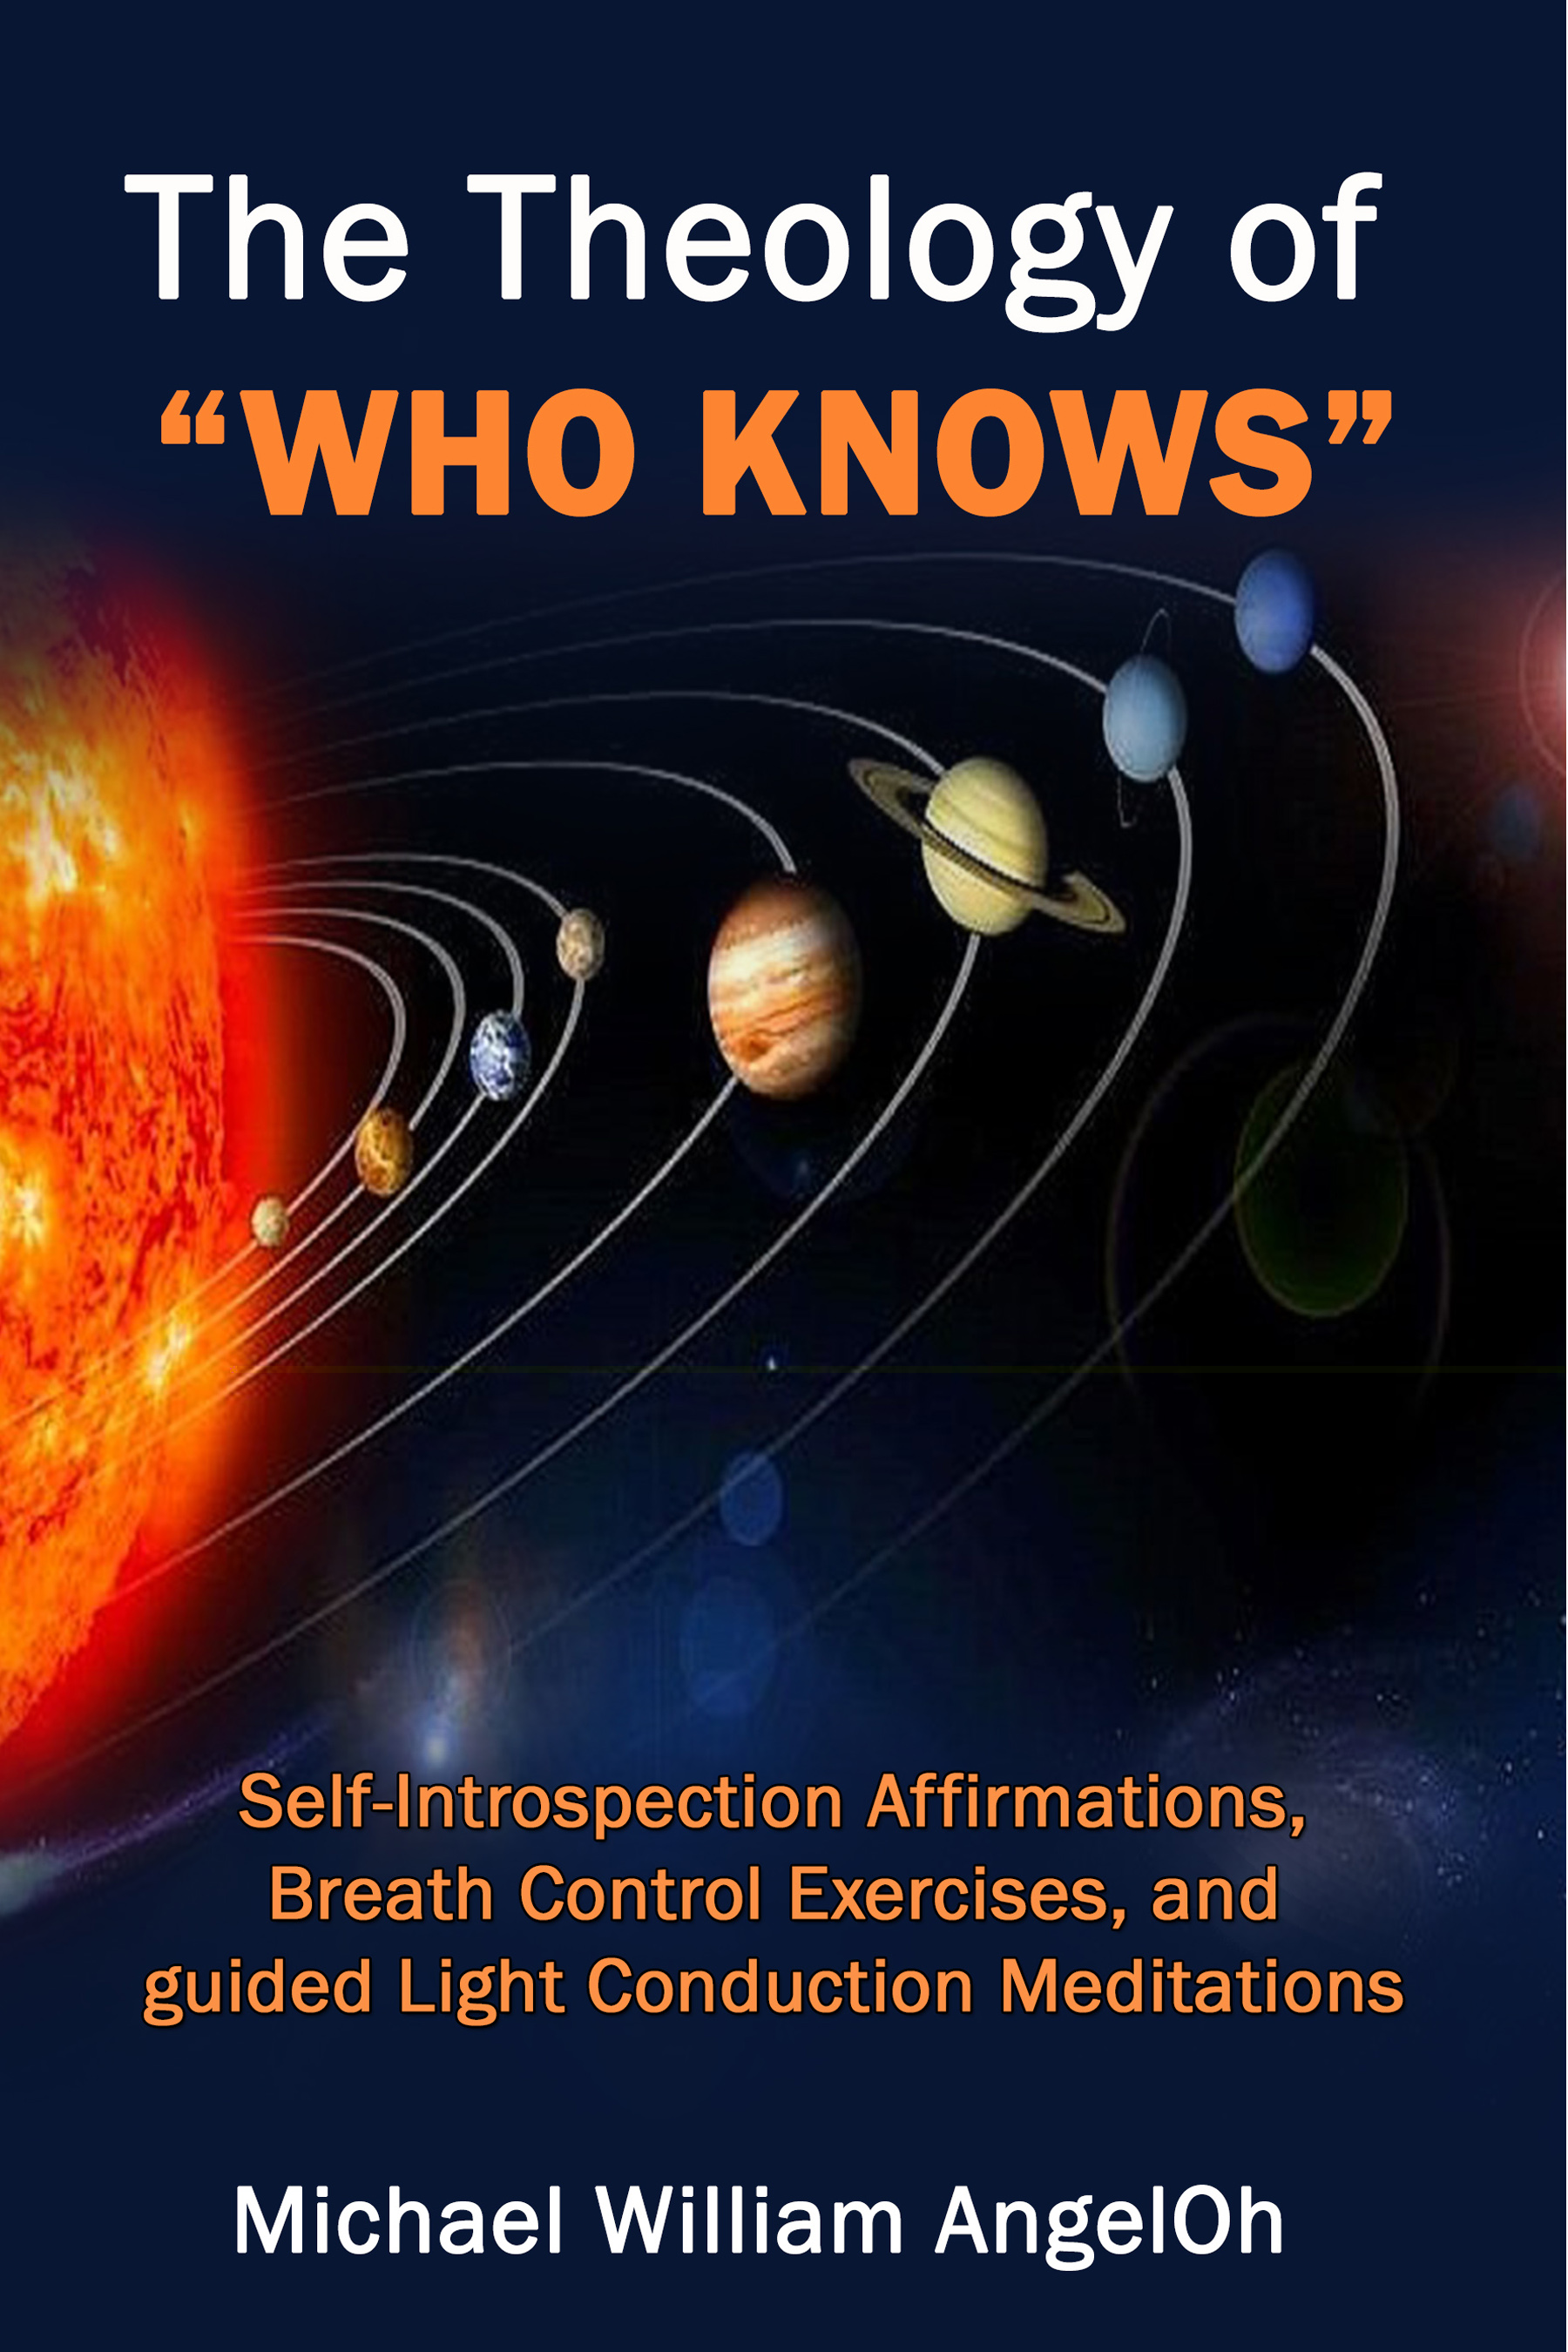 THE THEOLOGY OF WHO KNOWS